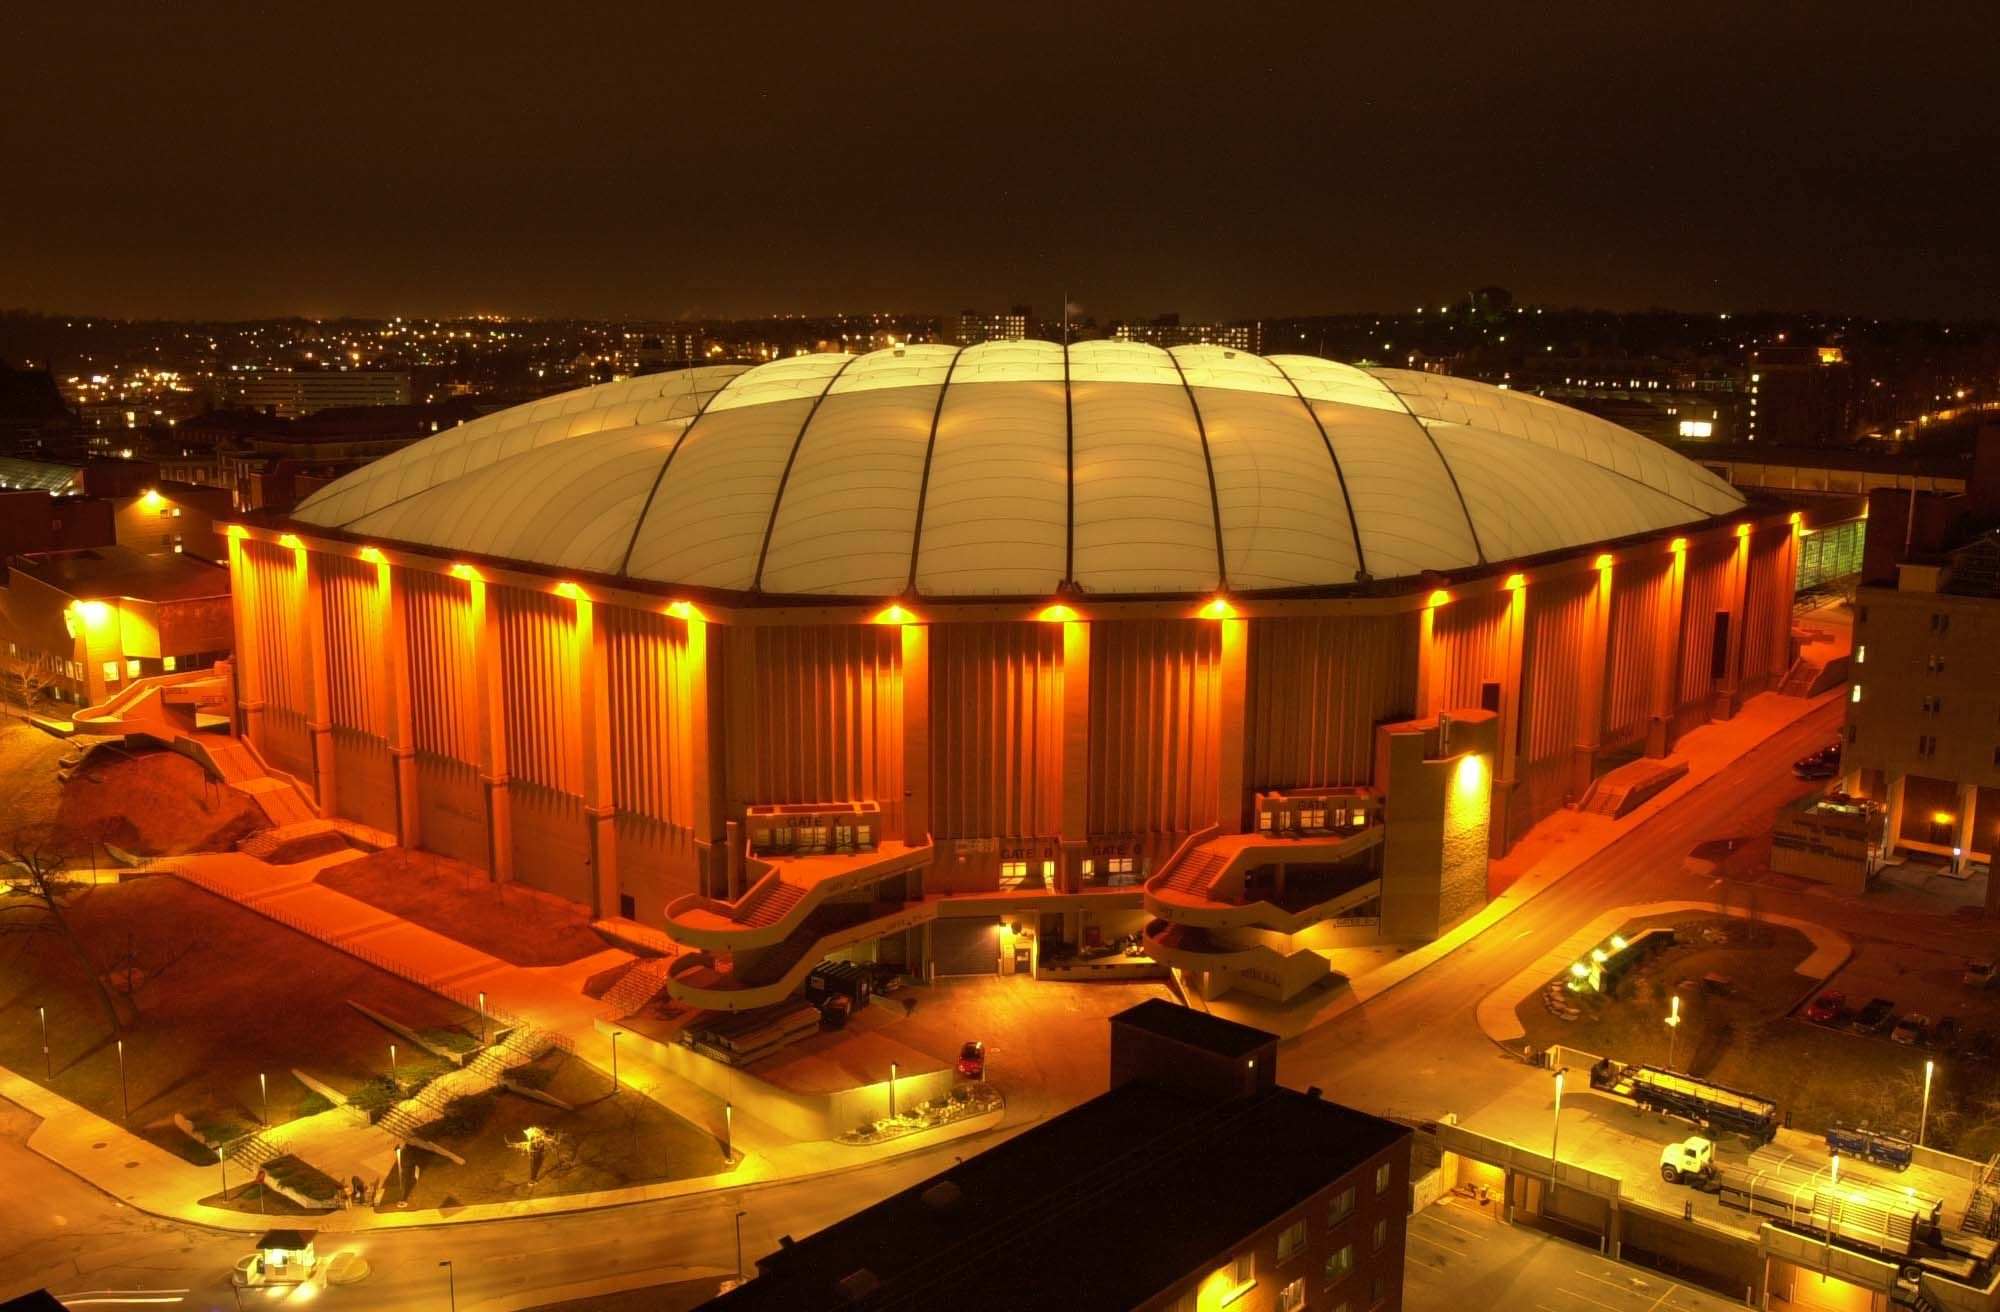 Carrier dome syracuse ny a staple of my hometown city witnessed sports history here many a time